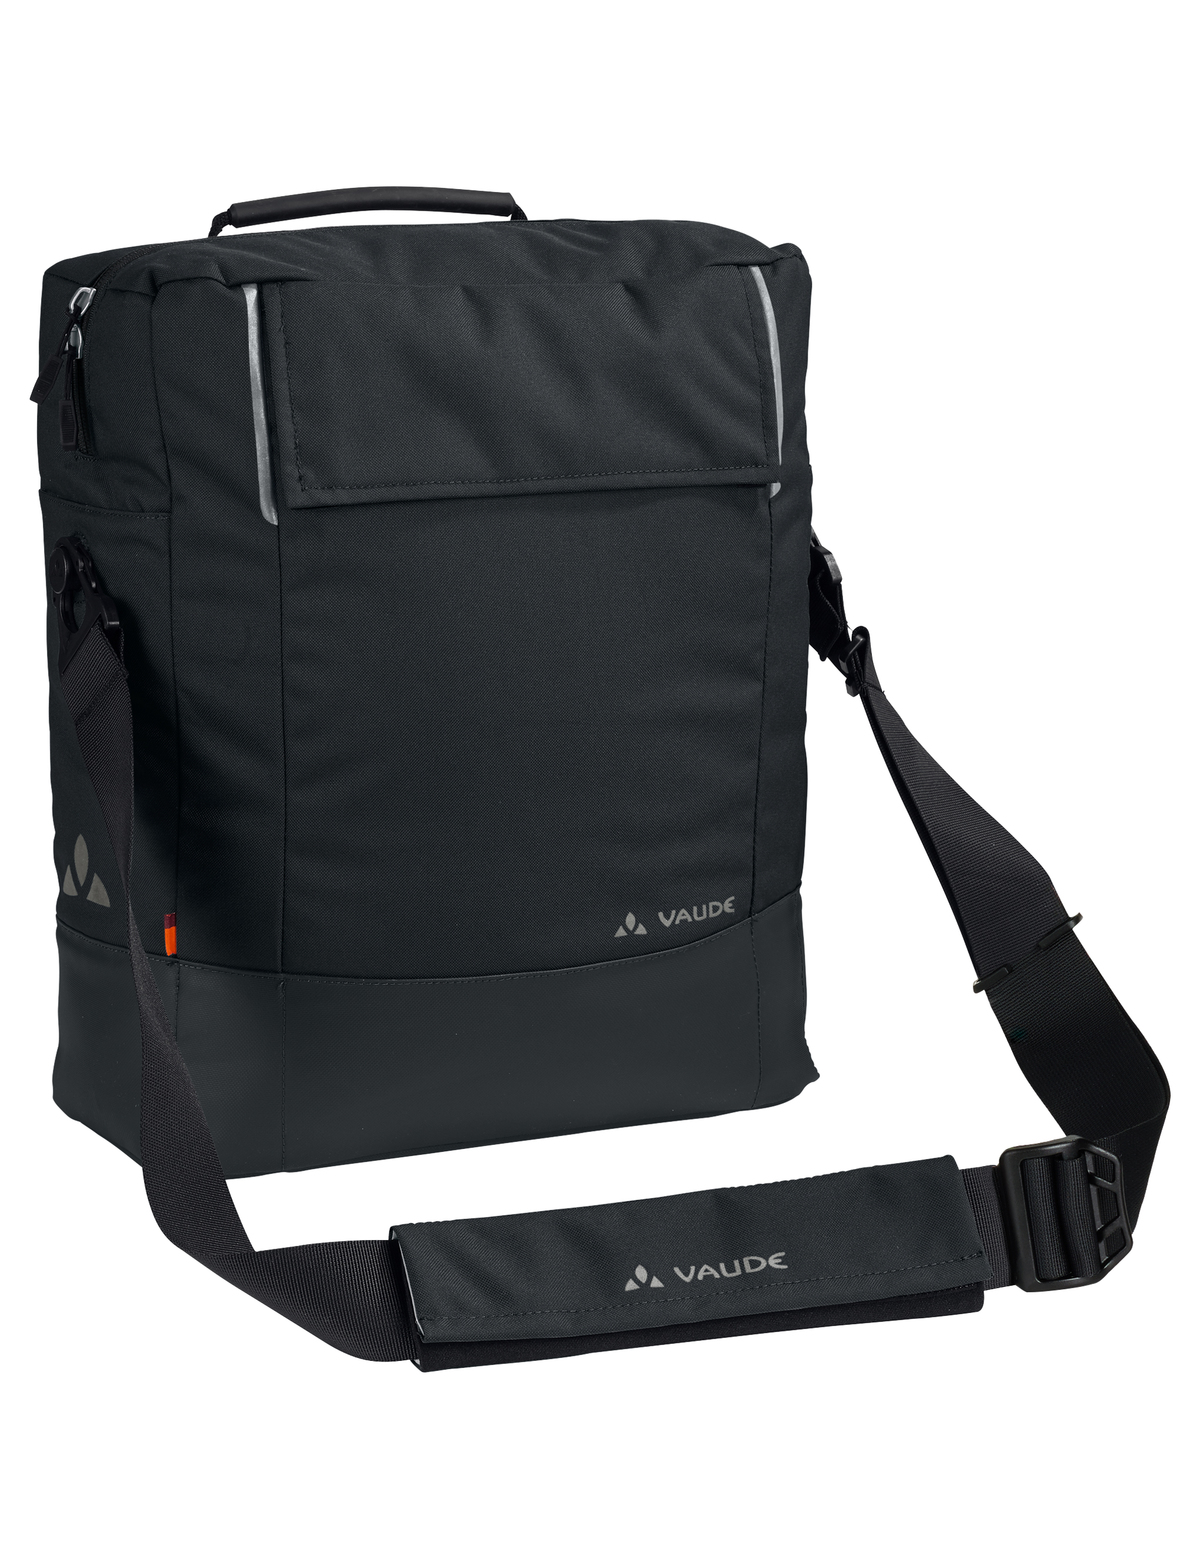 VAUDE Cyclist Bag black  - schneider-sports